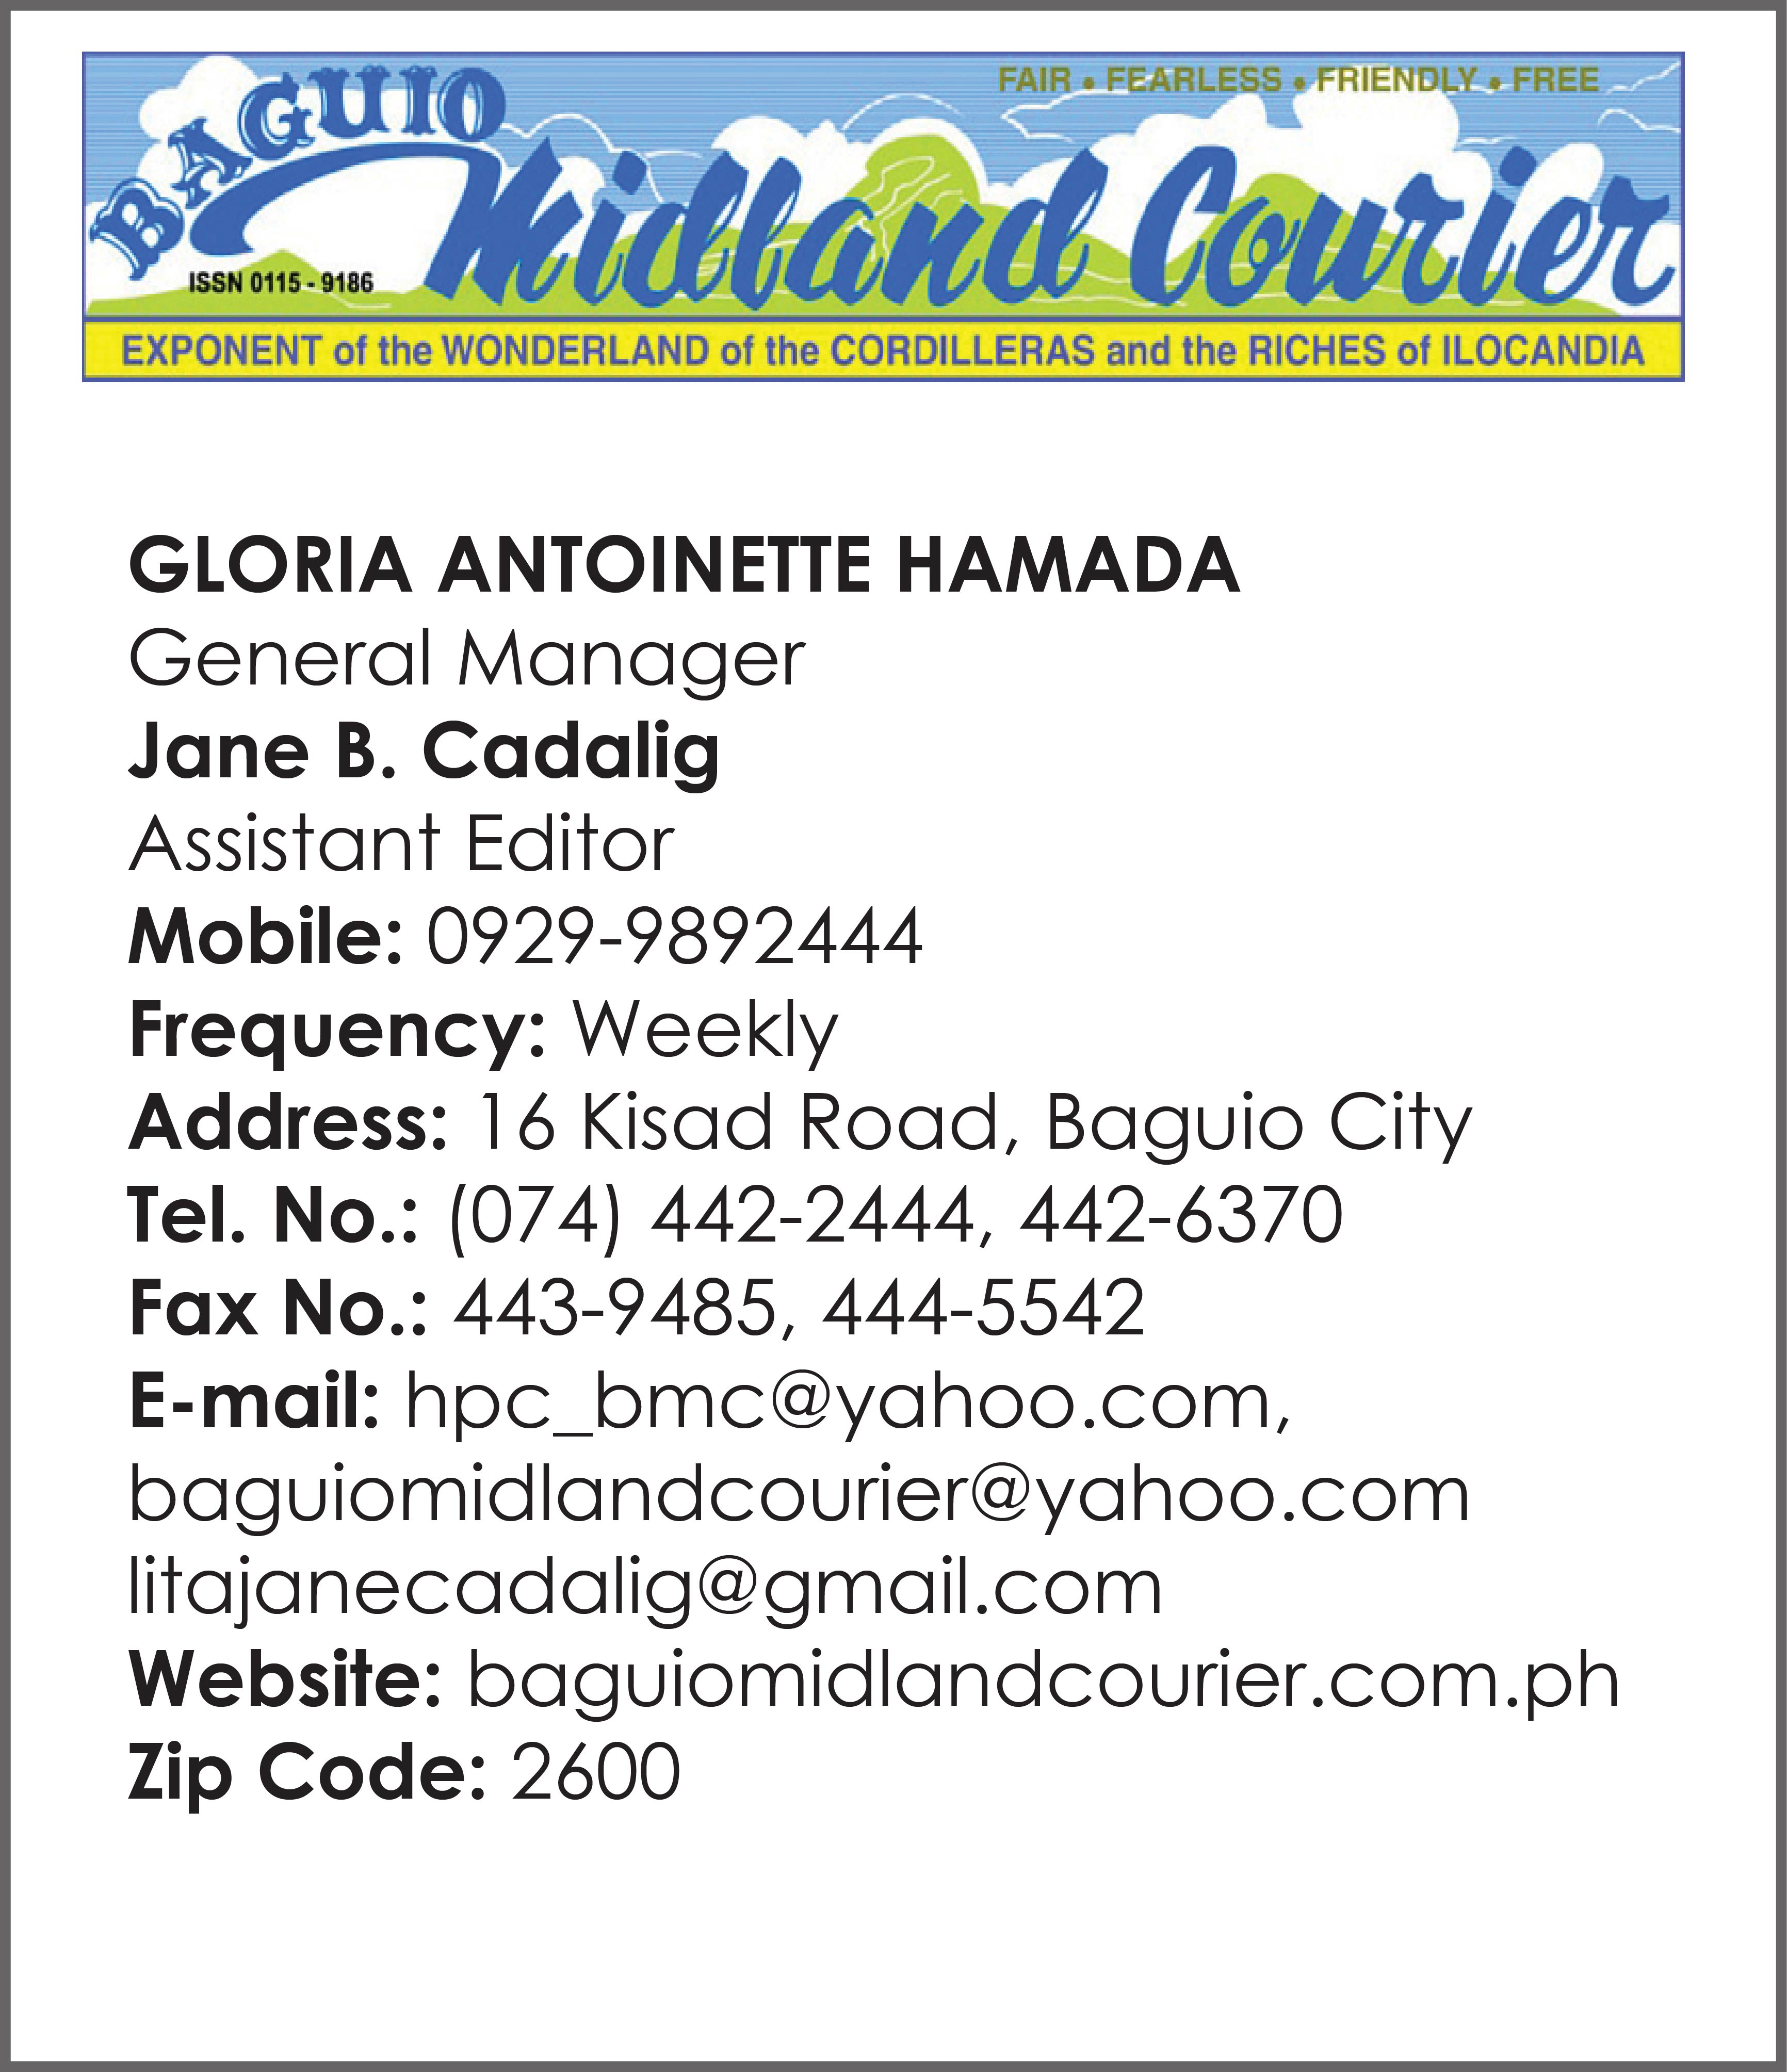 Baguio Midland Courier_PPI Member's Data